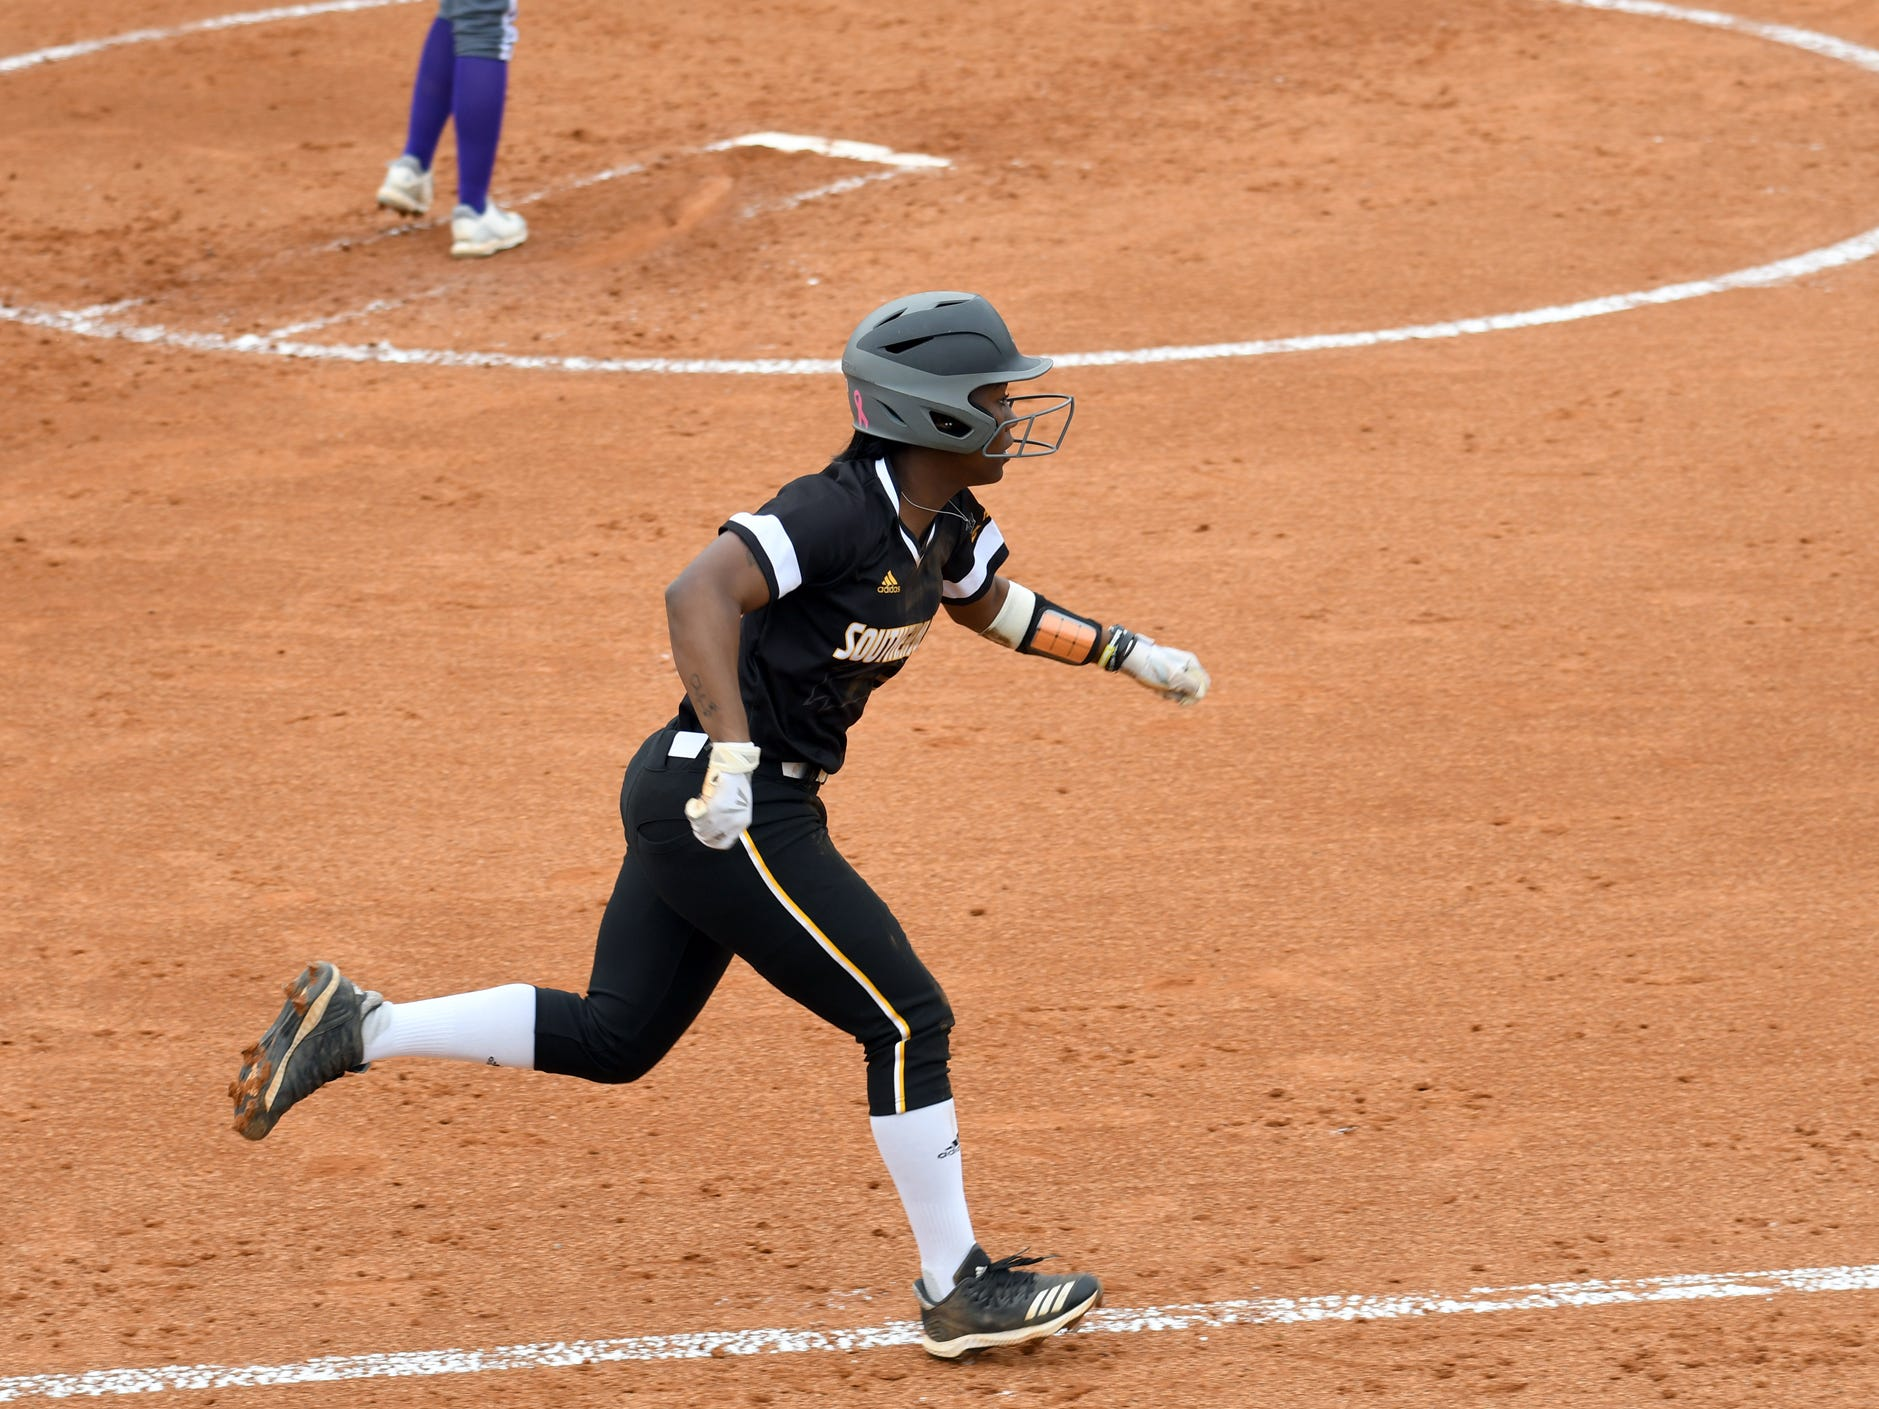 Southern Miss infielder Alyssa Davis runs to first base in a game against Alcorn on Tuesday, March 12, 2019.